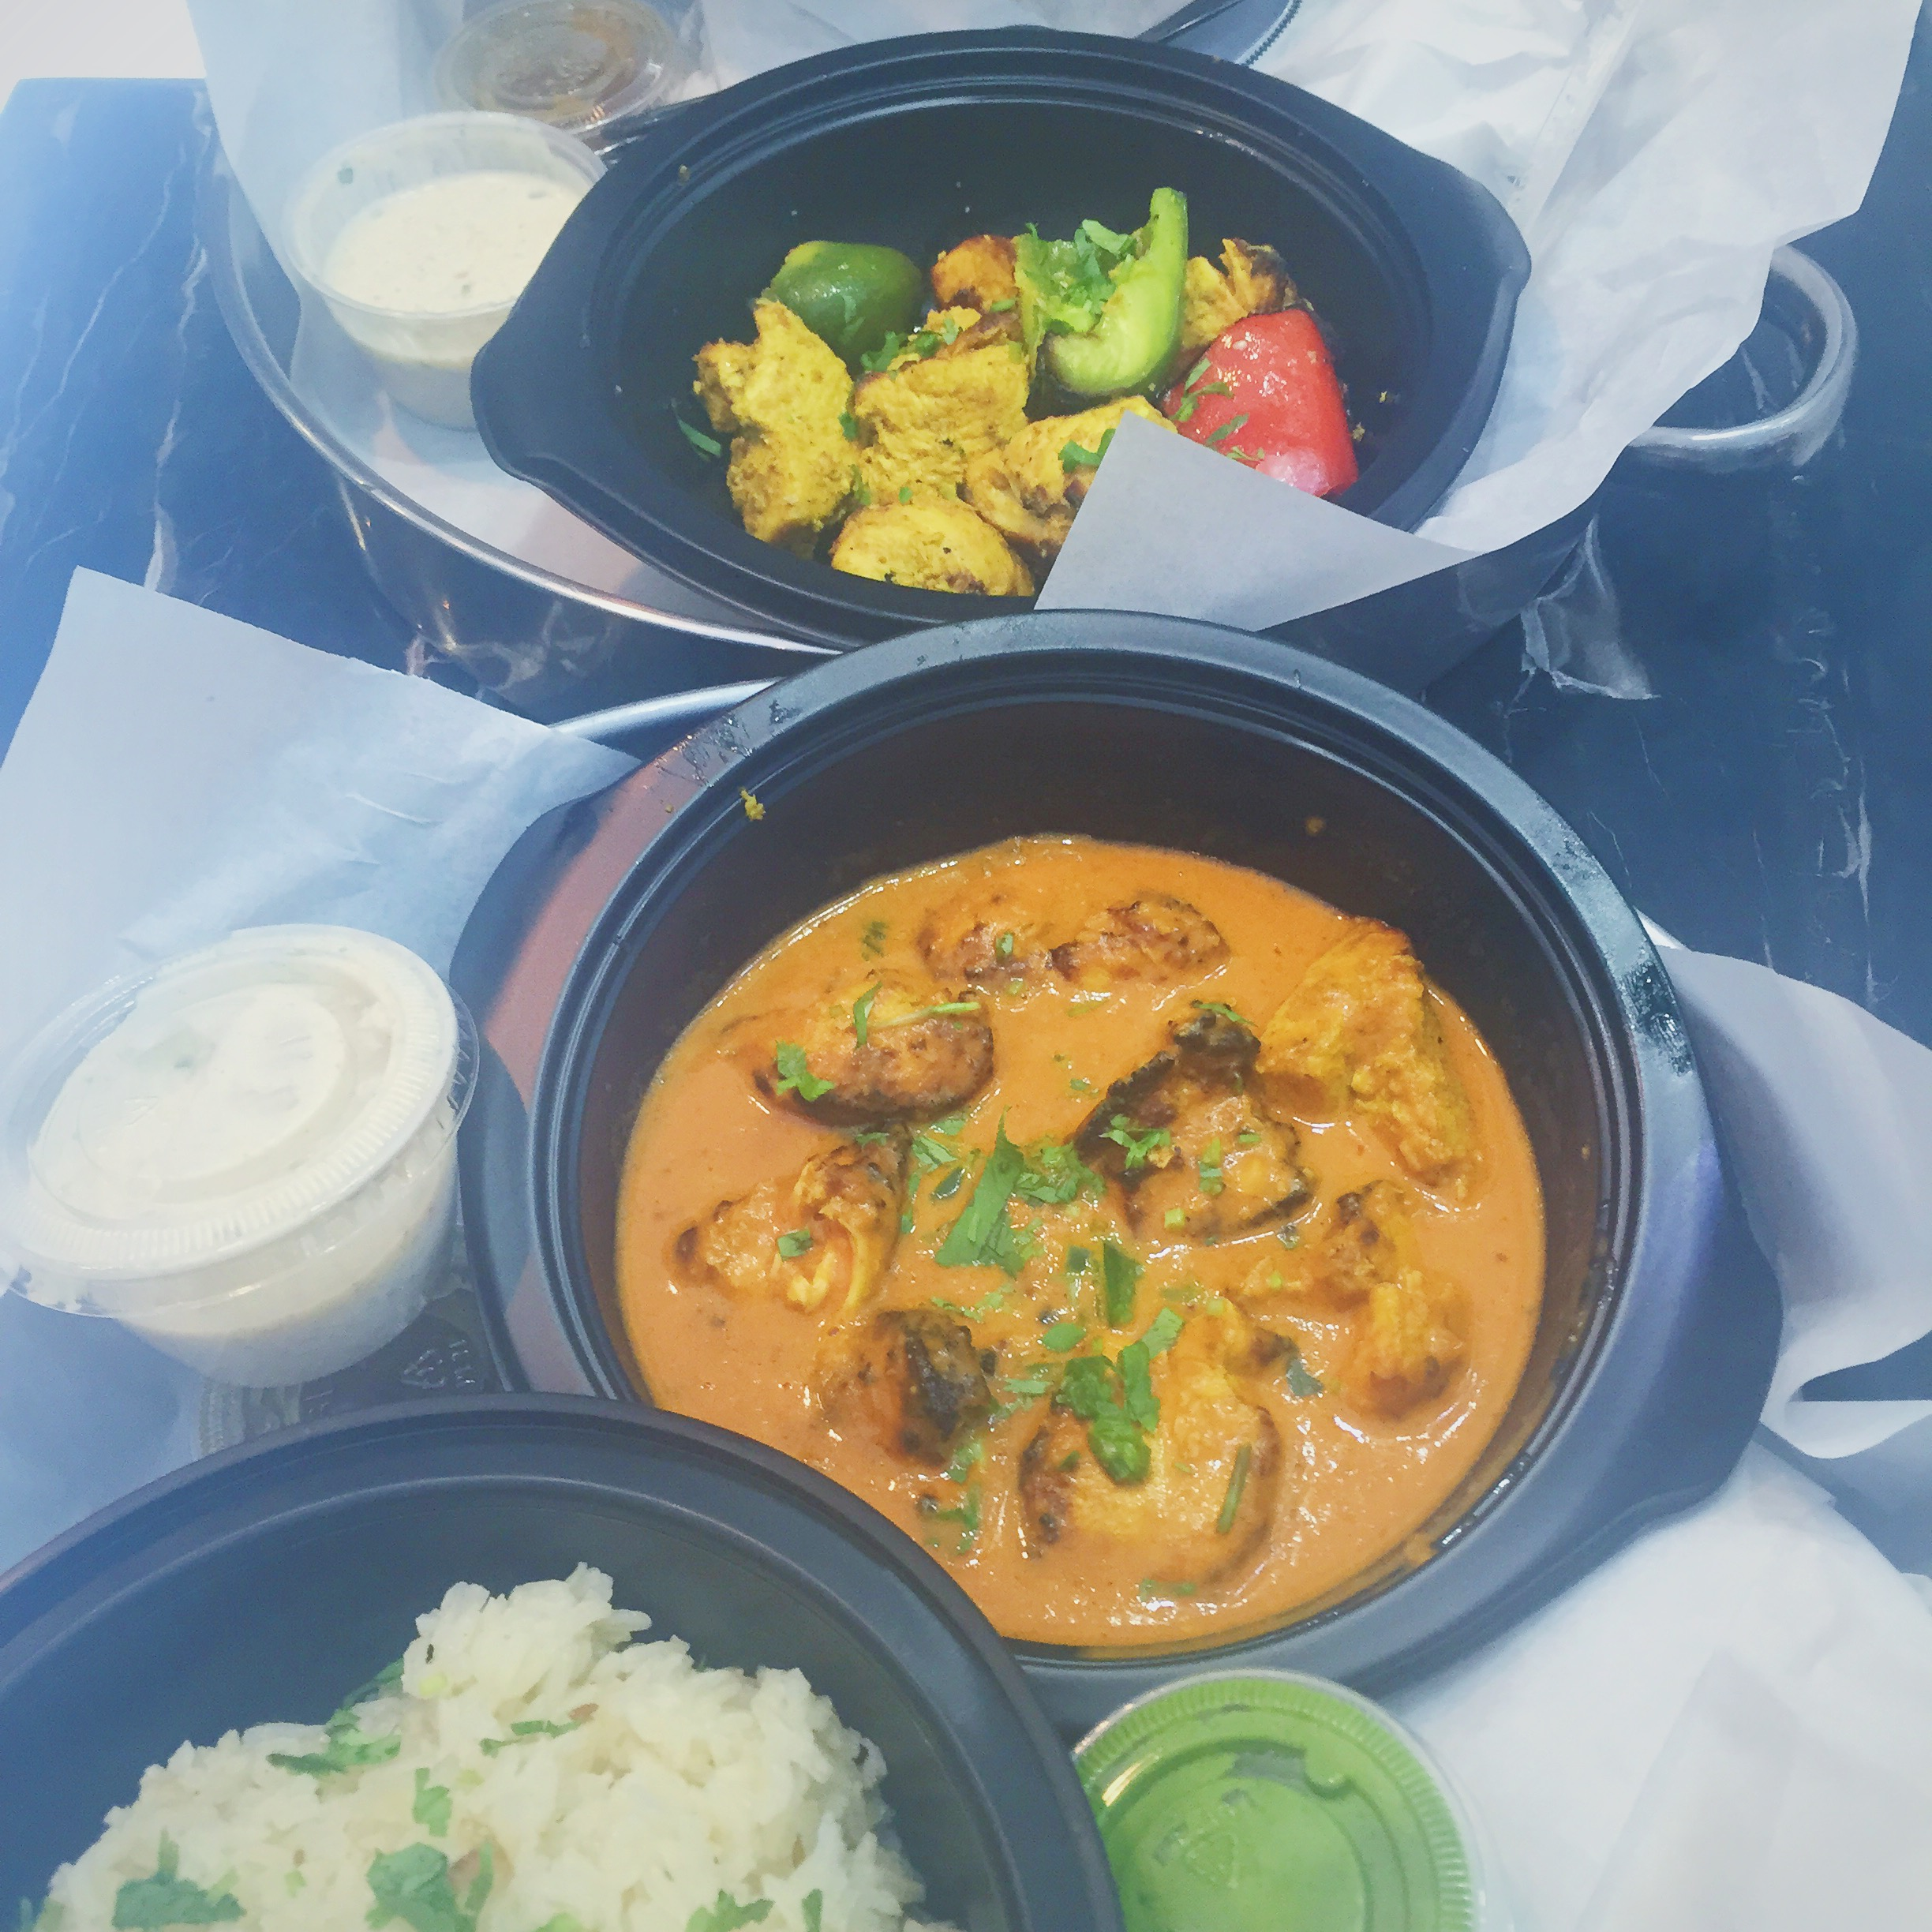 Indian takeout food from Grand Trunk DC